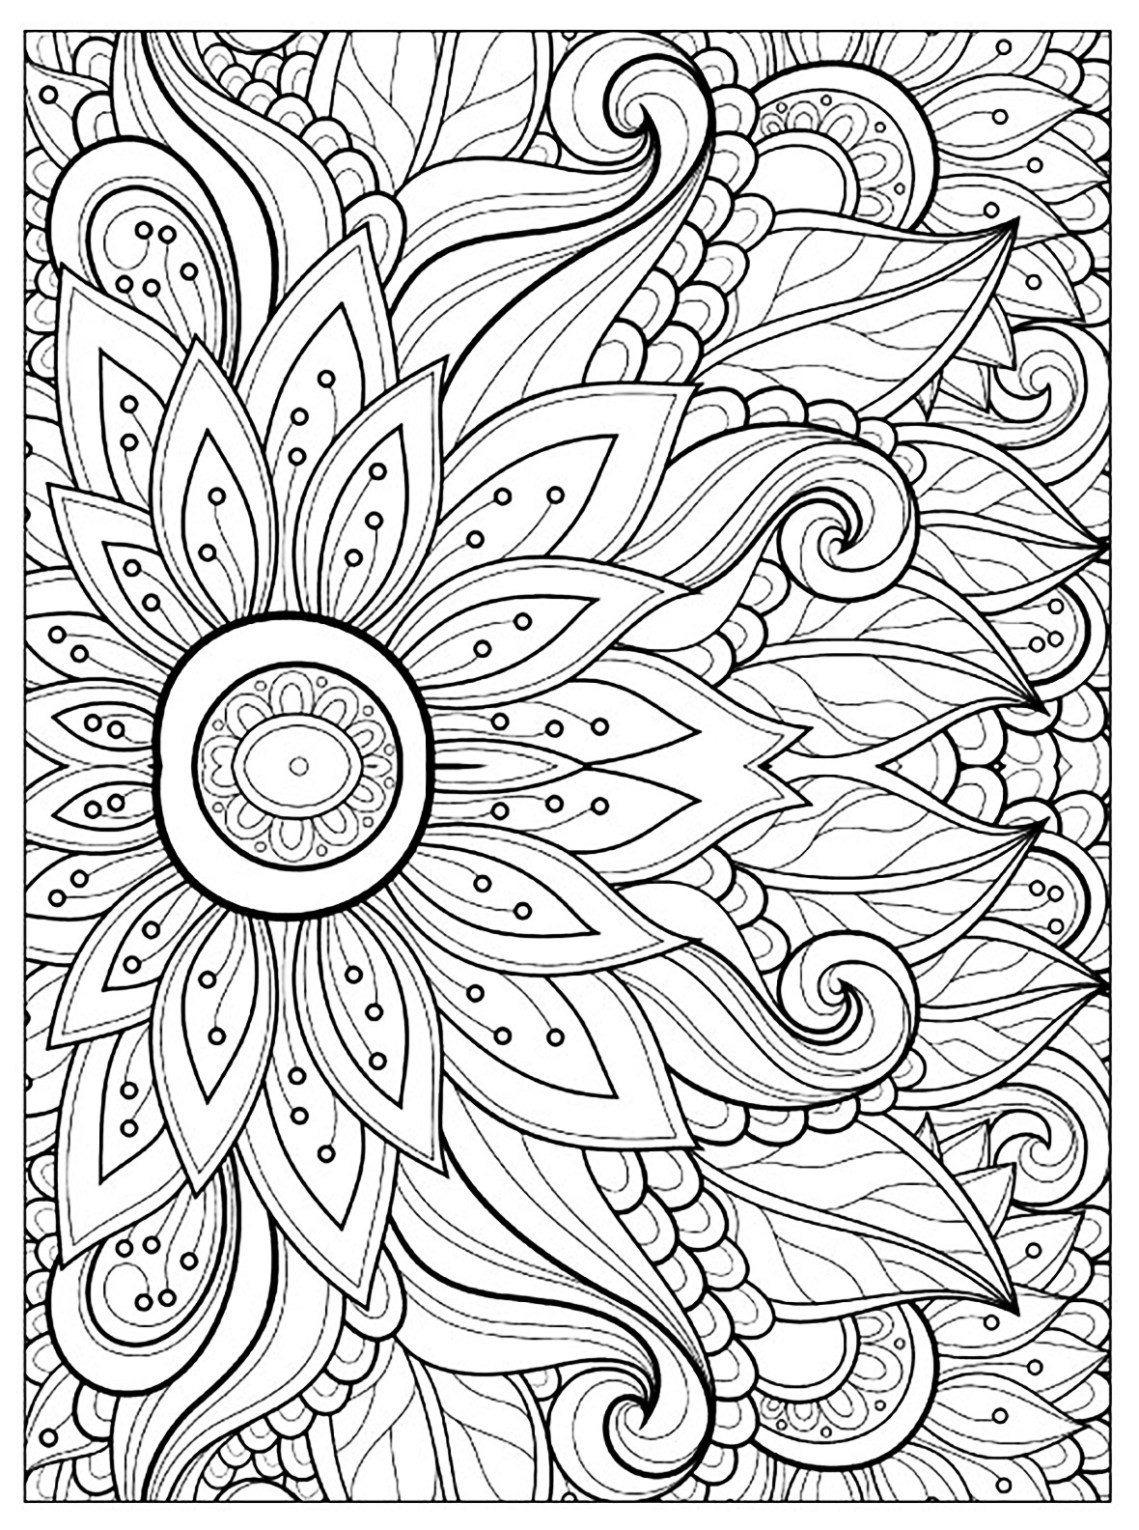 Flowers and vegetation - Coloring pages for adults ... | coloring pages for adults flowers